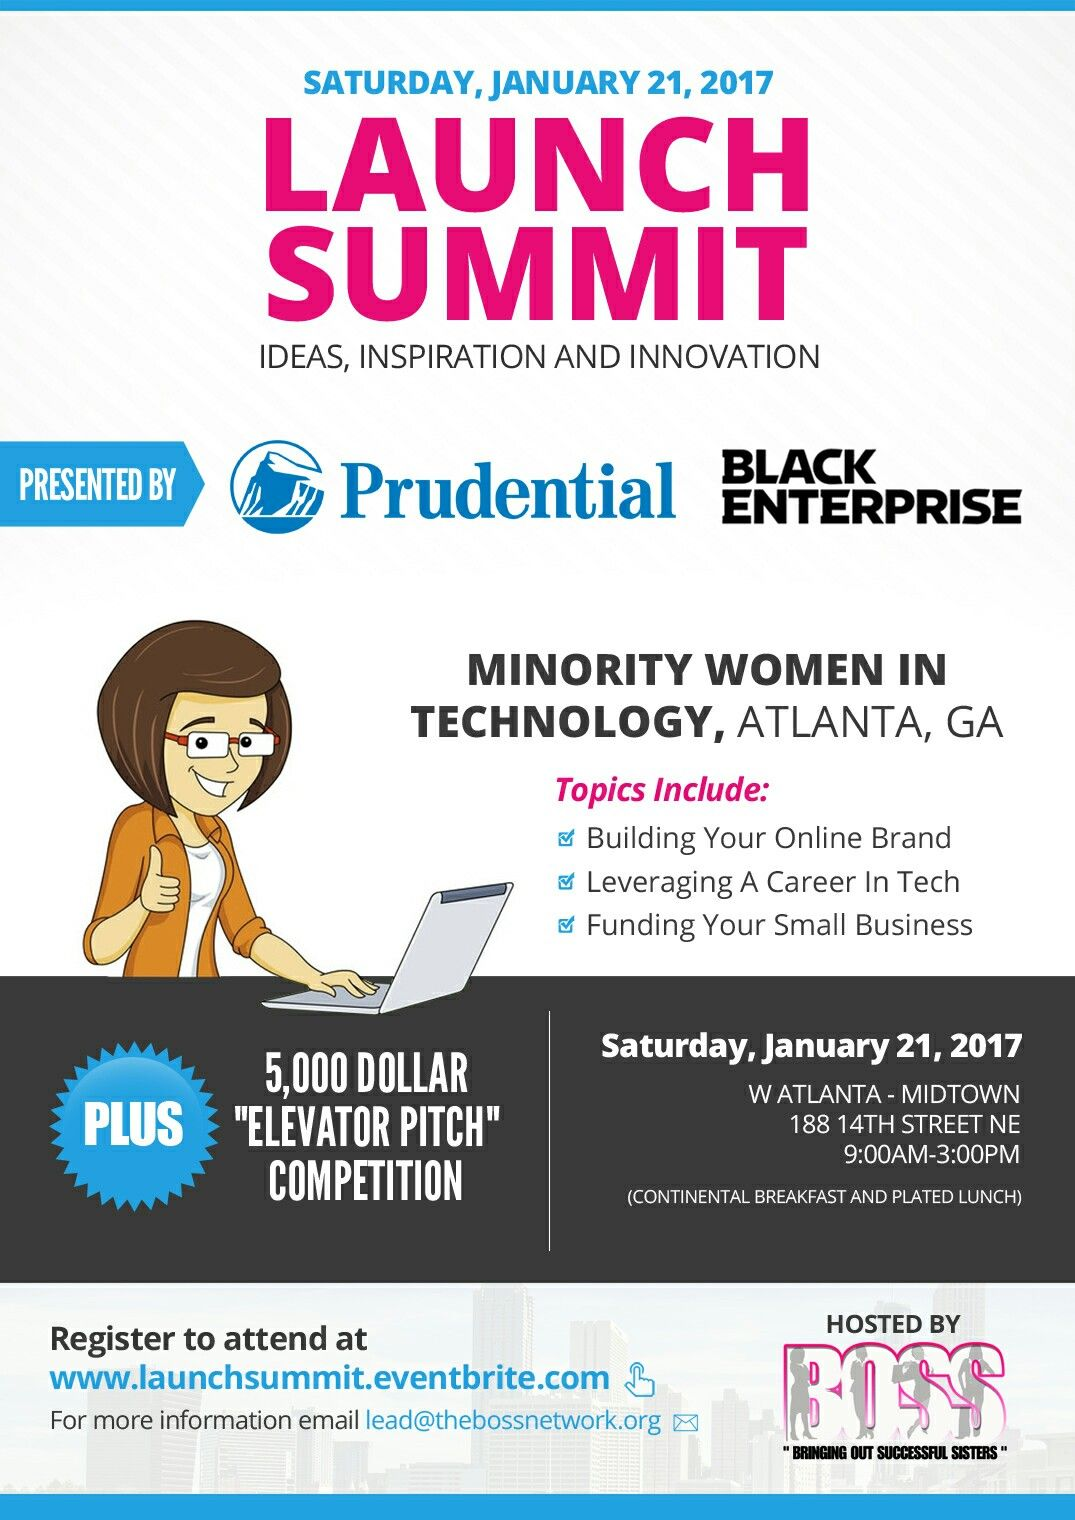 One Week Away: Win 5,000 For Your Business. Register at www.launchsummit.com or email lead@thebossnetwork.org Don't miss out! #BOSSUp